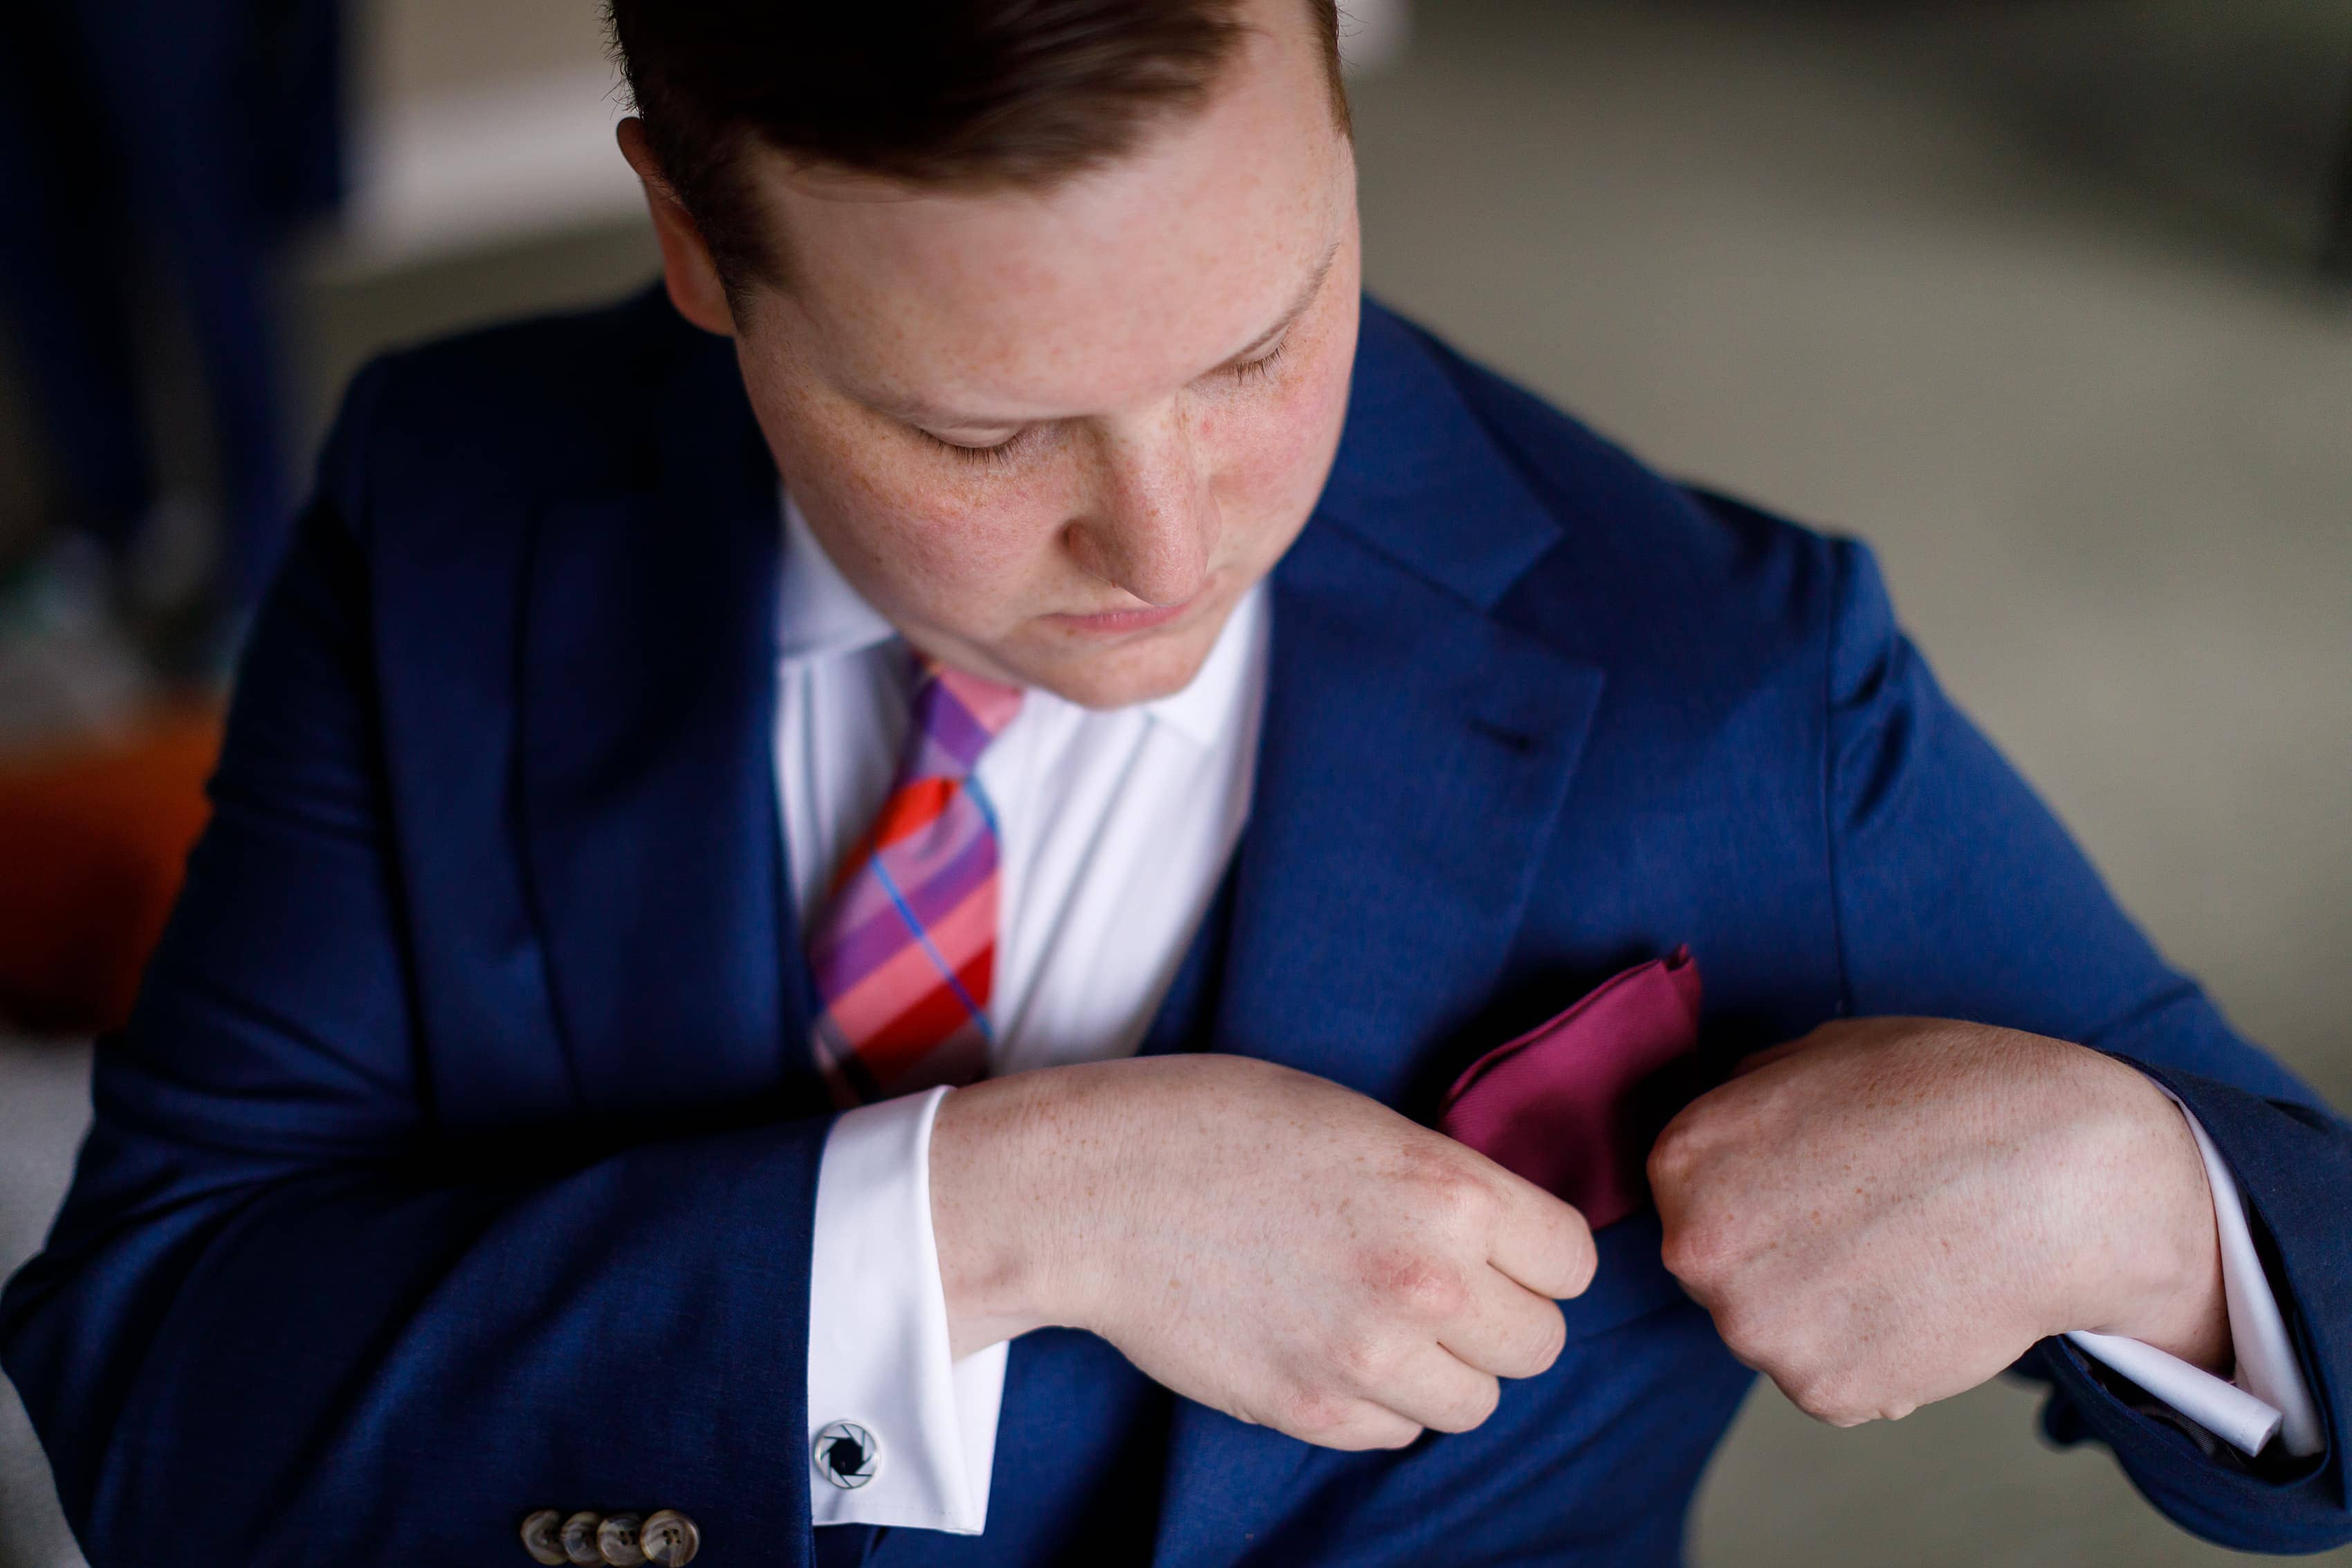 groom puts in pocket square while getting ready for wedding